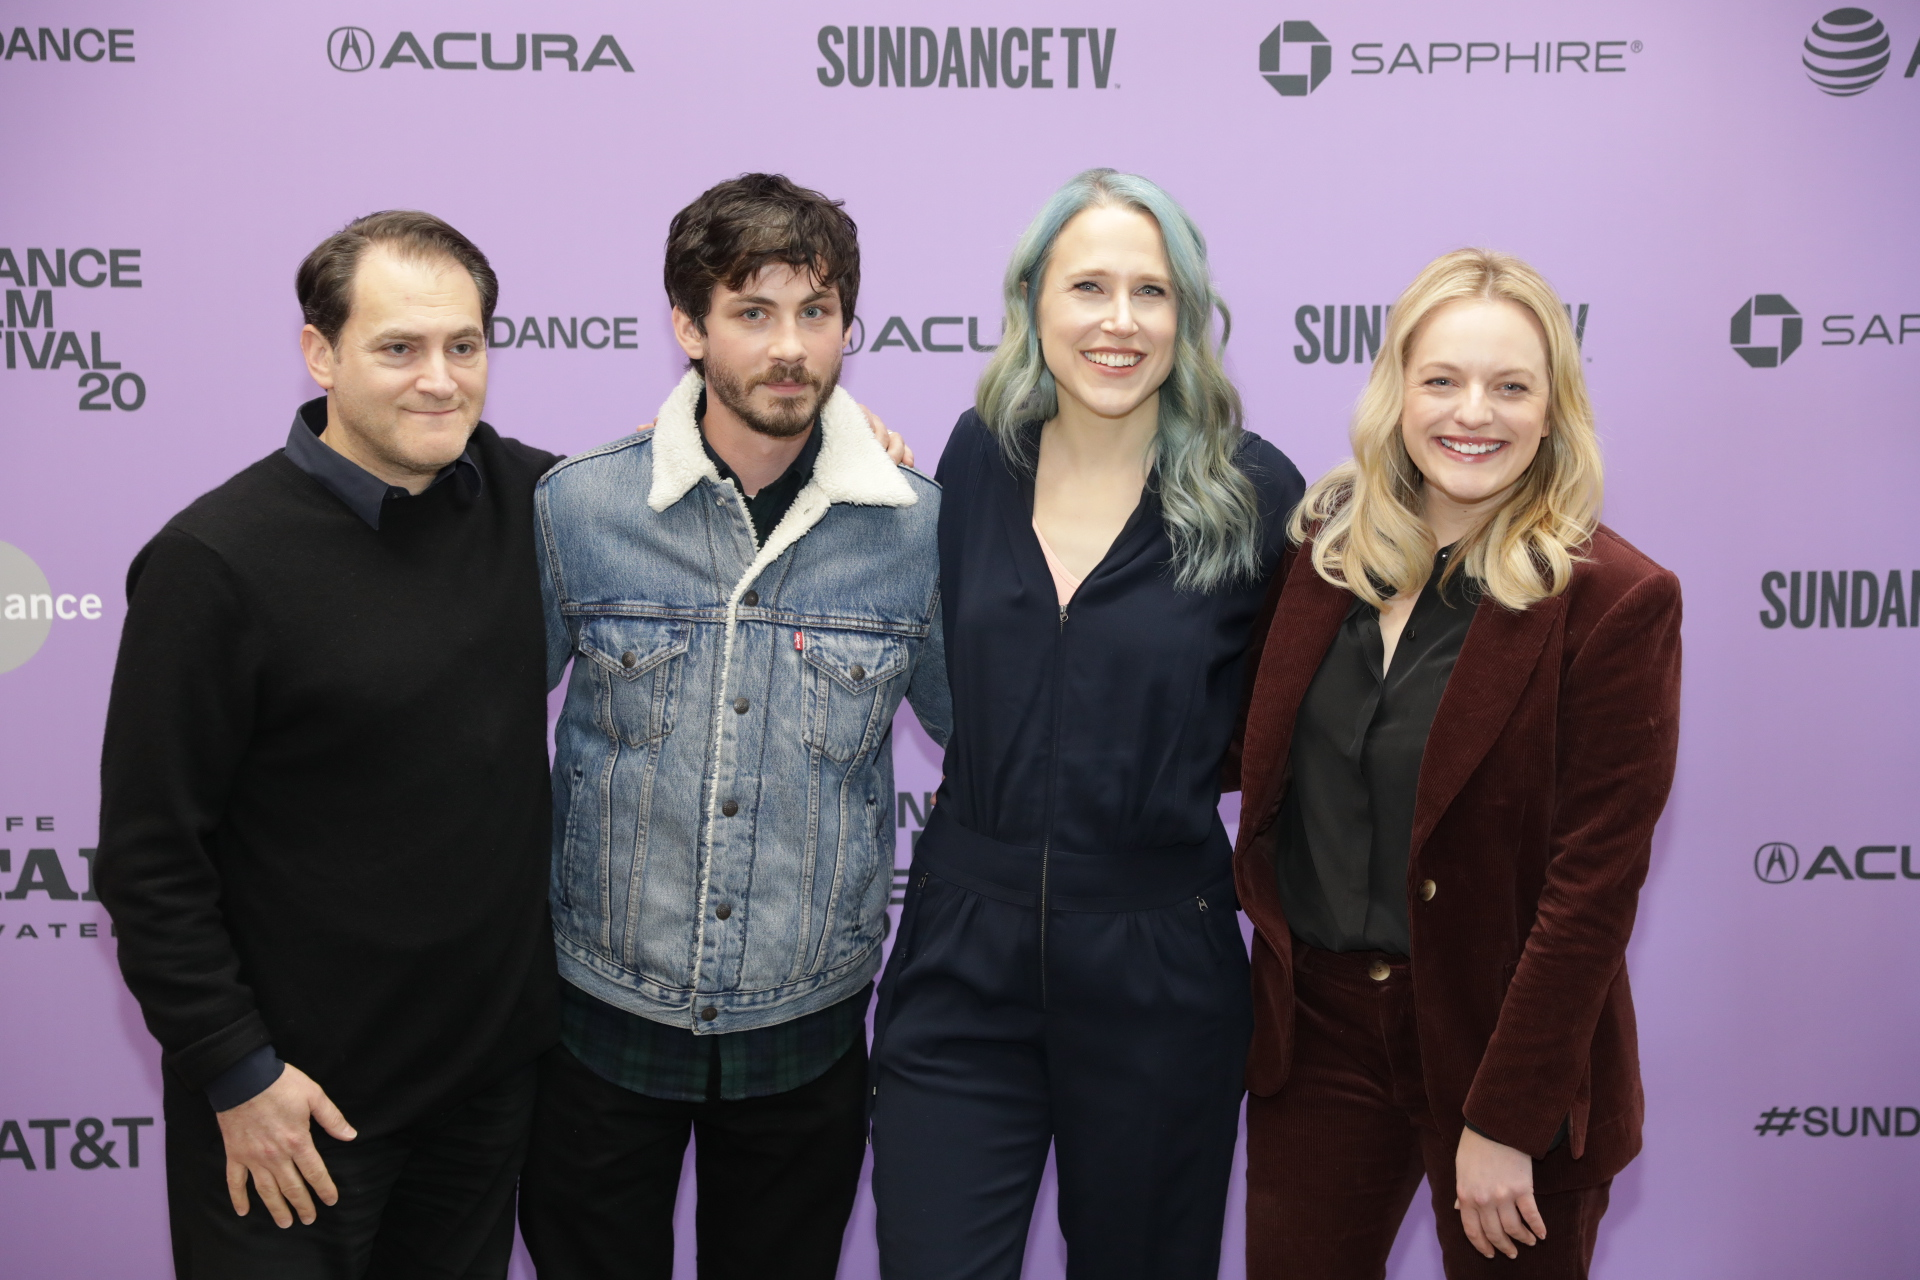 Cast of the new film, Shirley at the Eccles Theater for the Sundance Film Festival 2020. Photo by: Logan Sorenson (Lmsorenson.net)